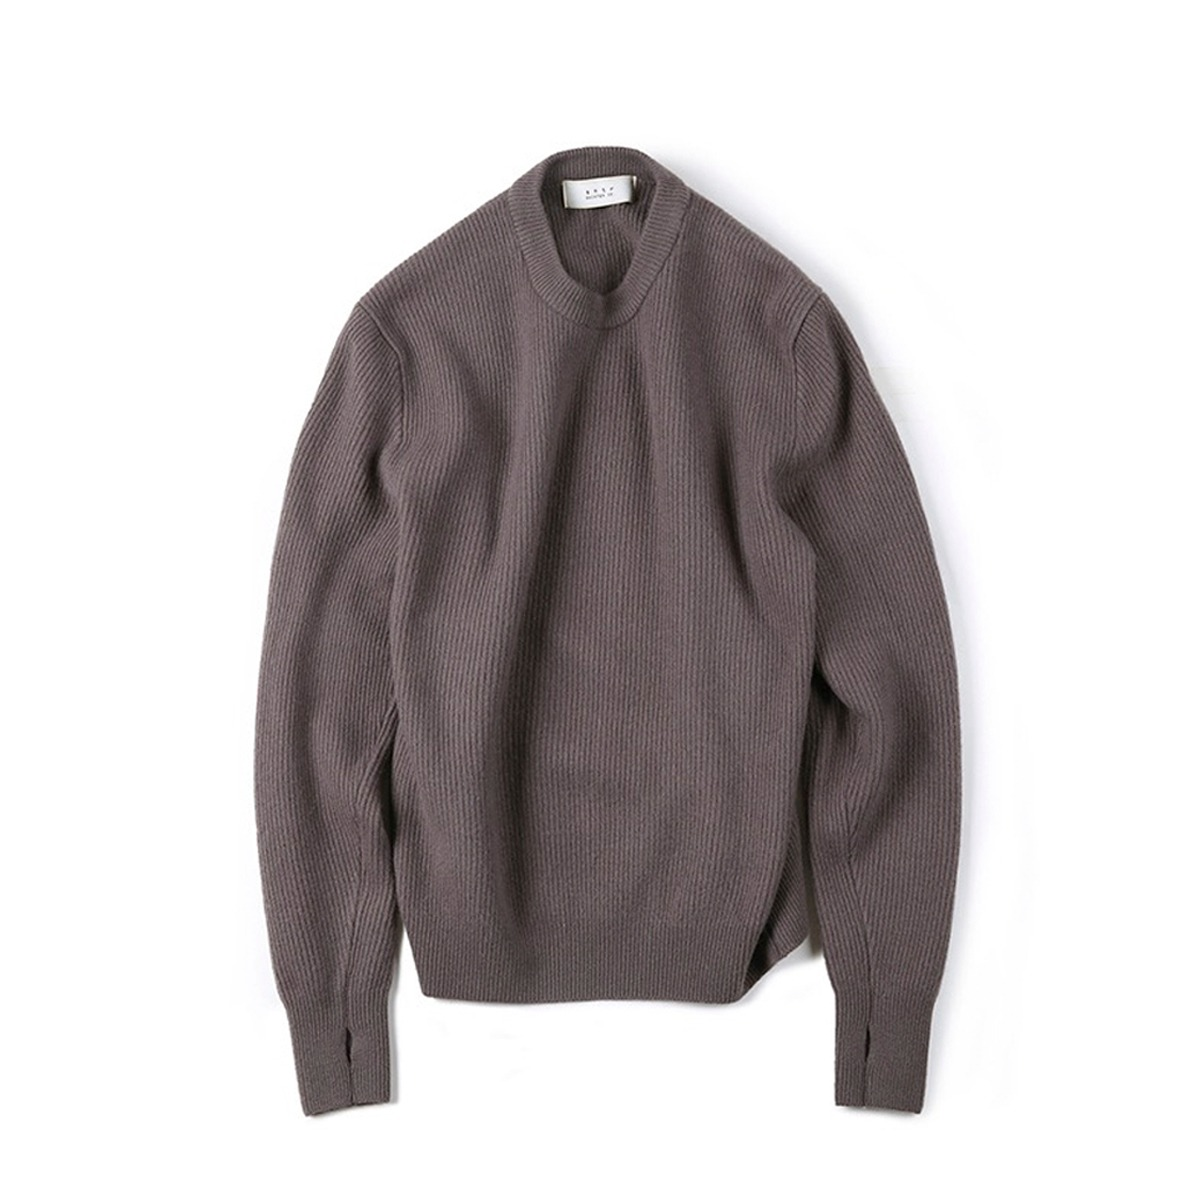 [SHIRTER] WANDERER CREW NECK KNIT 'PURPLE'